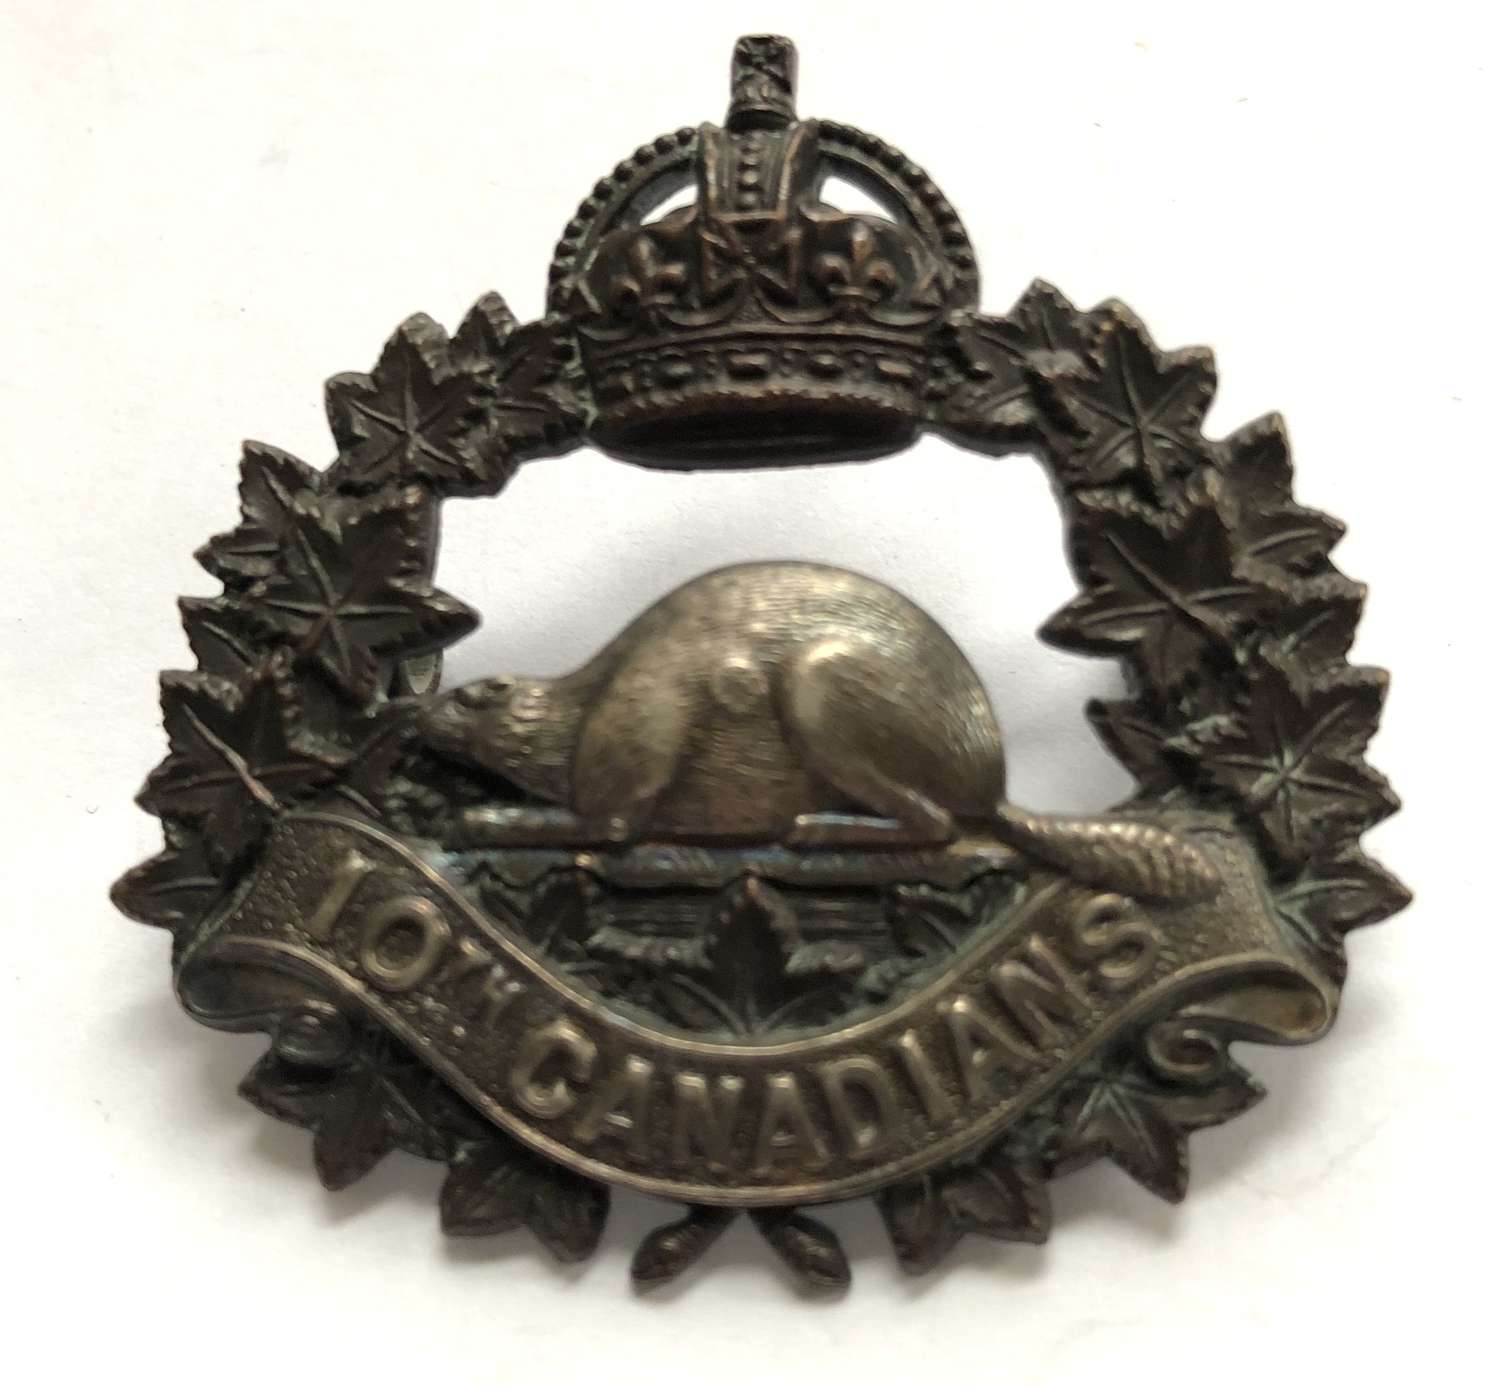 Canada. 10th Bn. CEF Officer's WW1 cap badge by Hicks & Sons, London